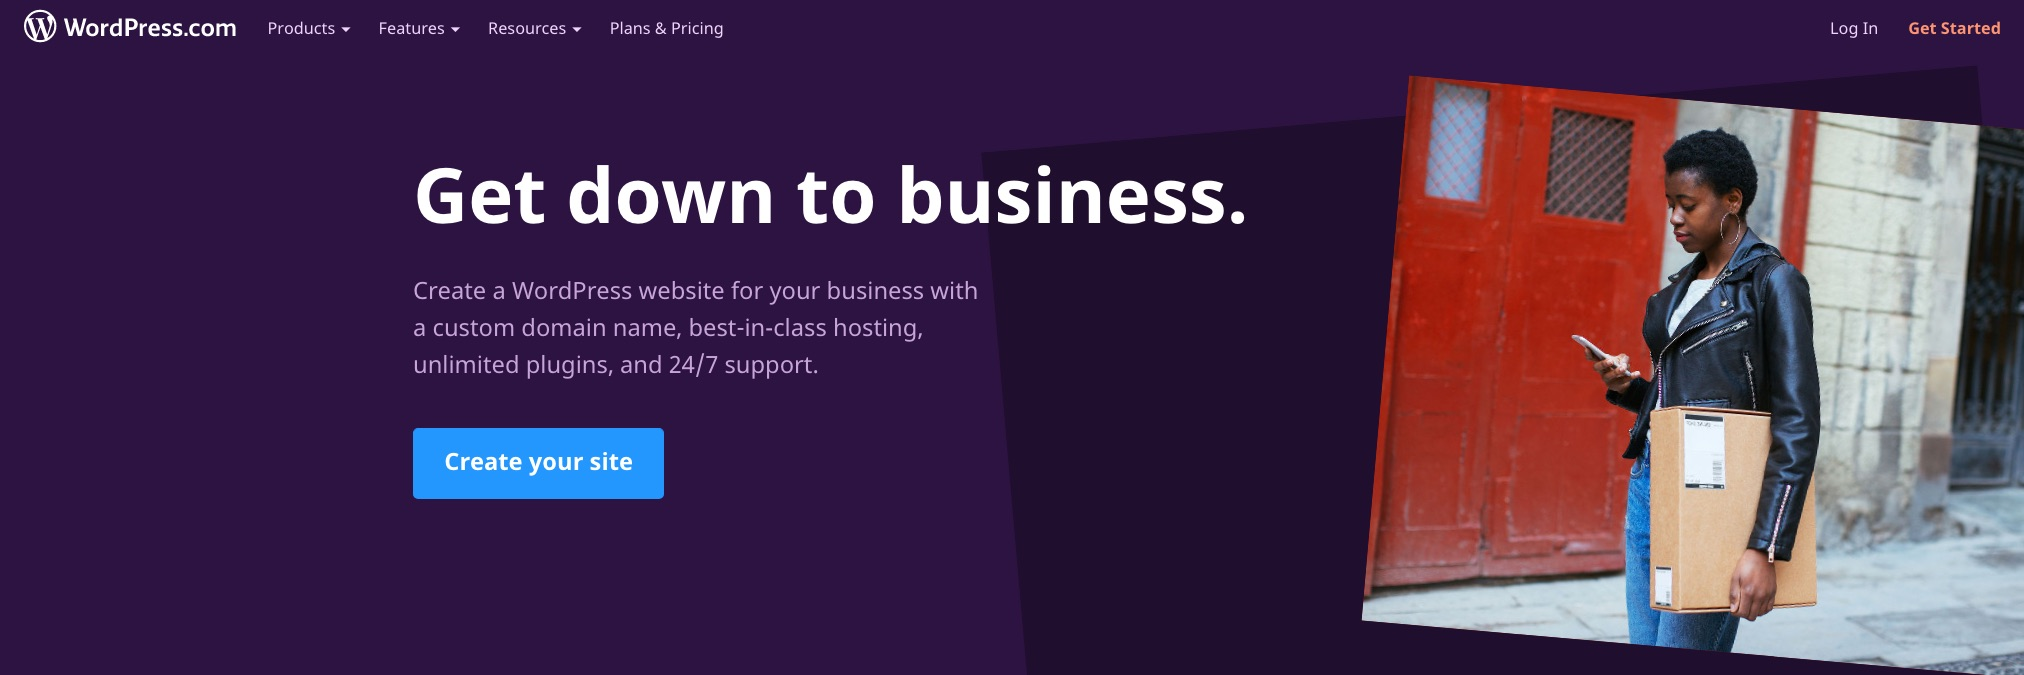 WordPress for Business home page